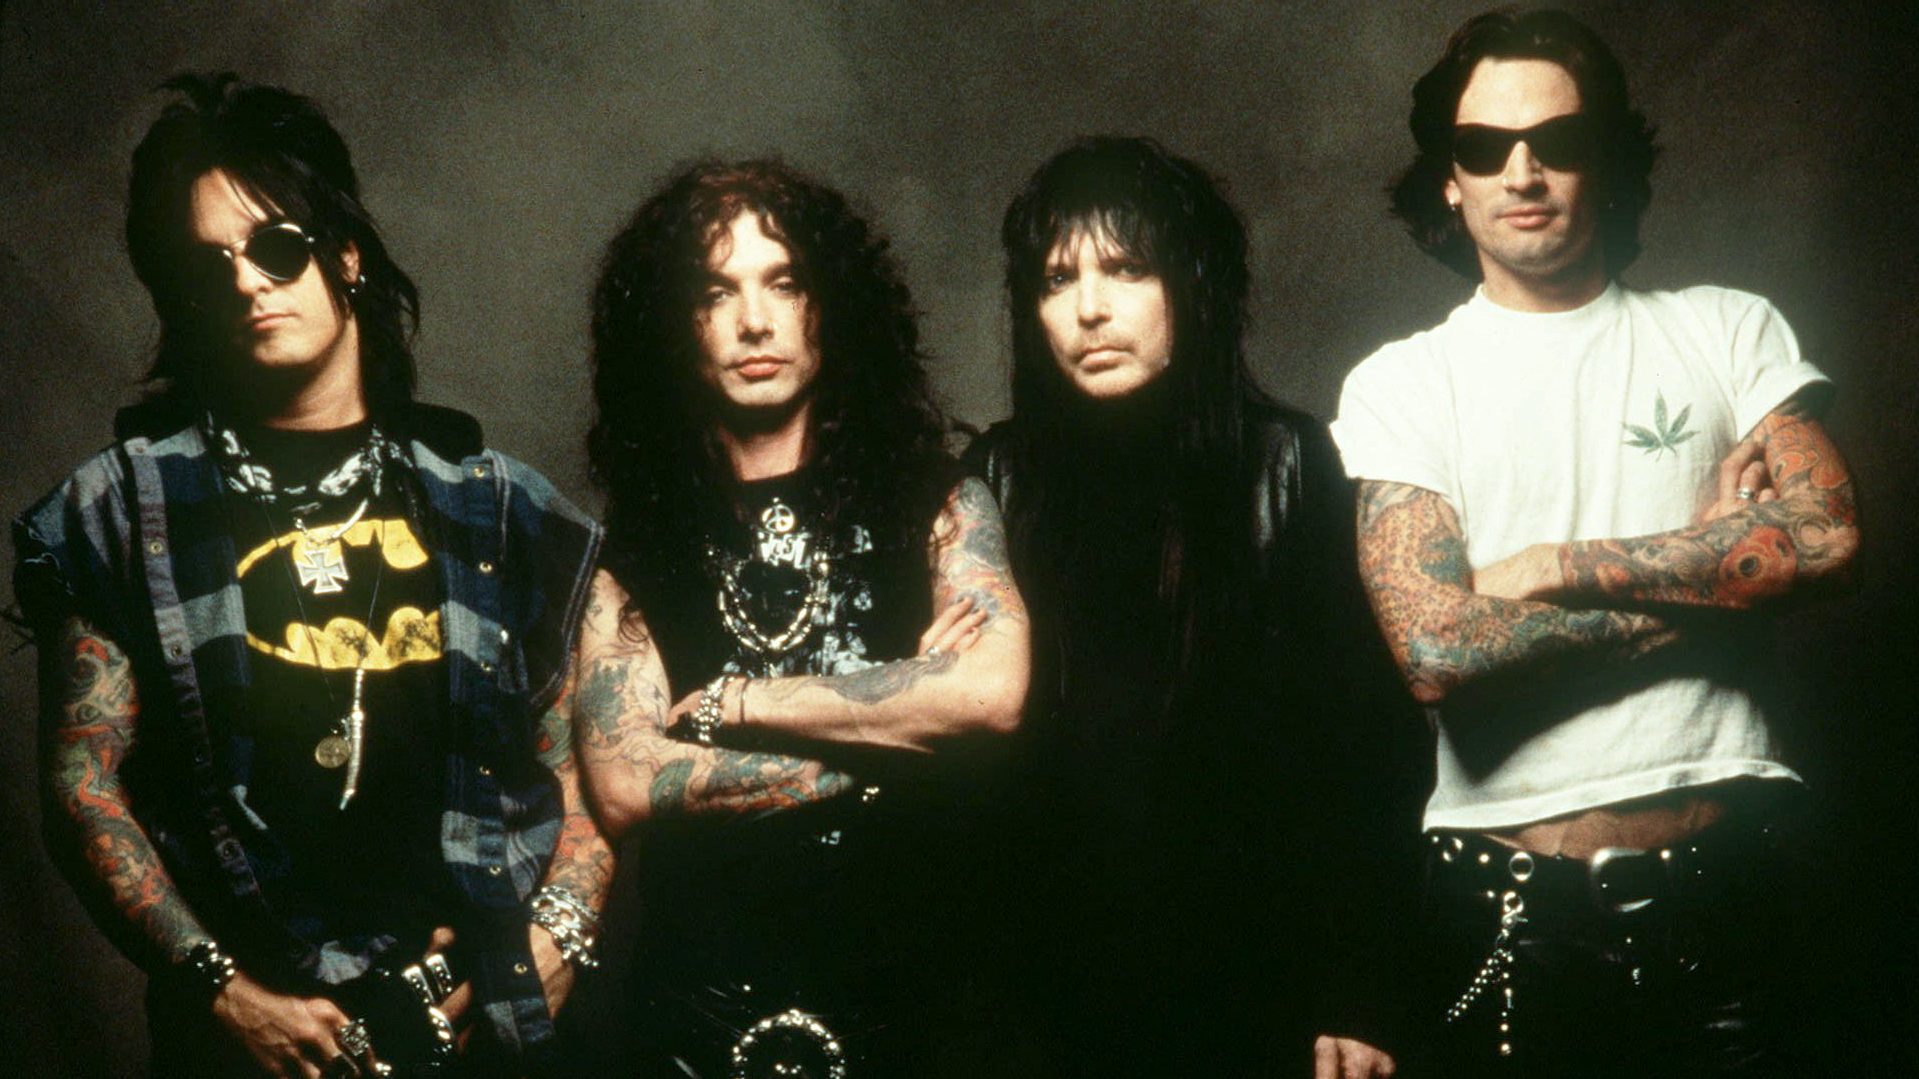 Motley Crue o Native Tongue??? Motley-crue-perform-85ad9218-b00a-402b-b200-f0ebd87e85fe